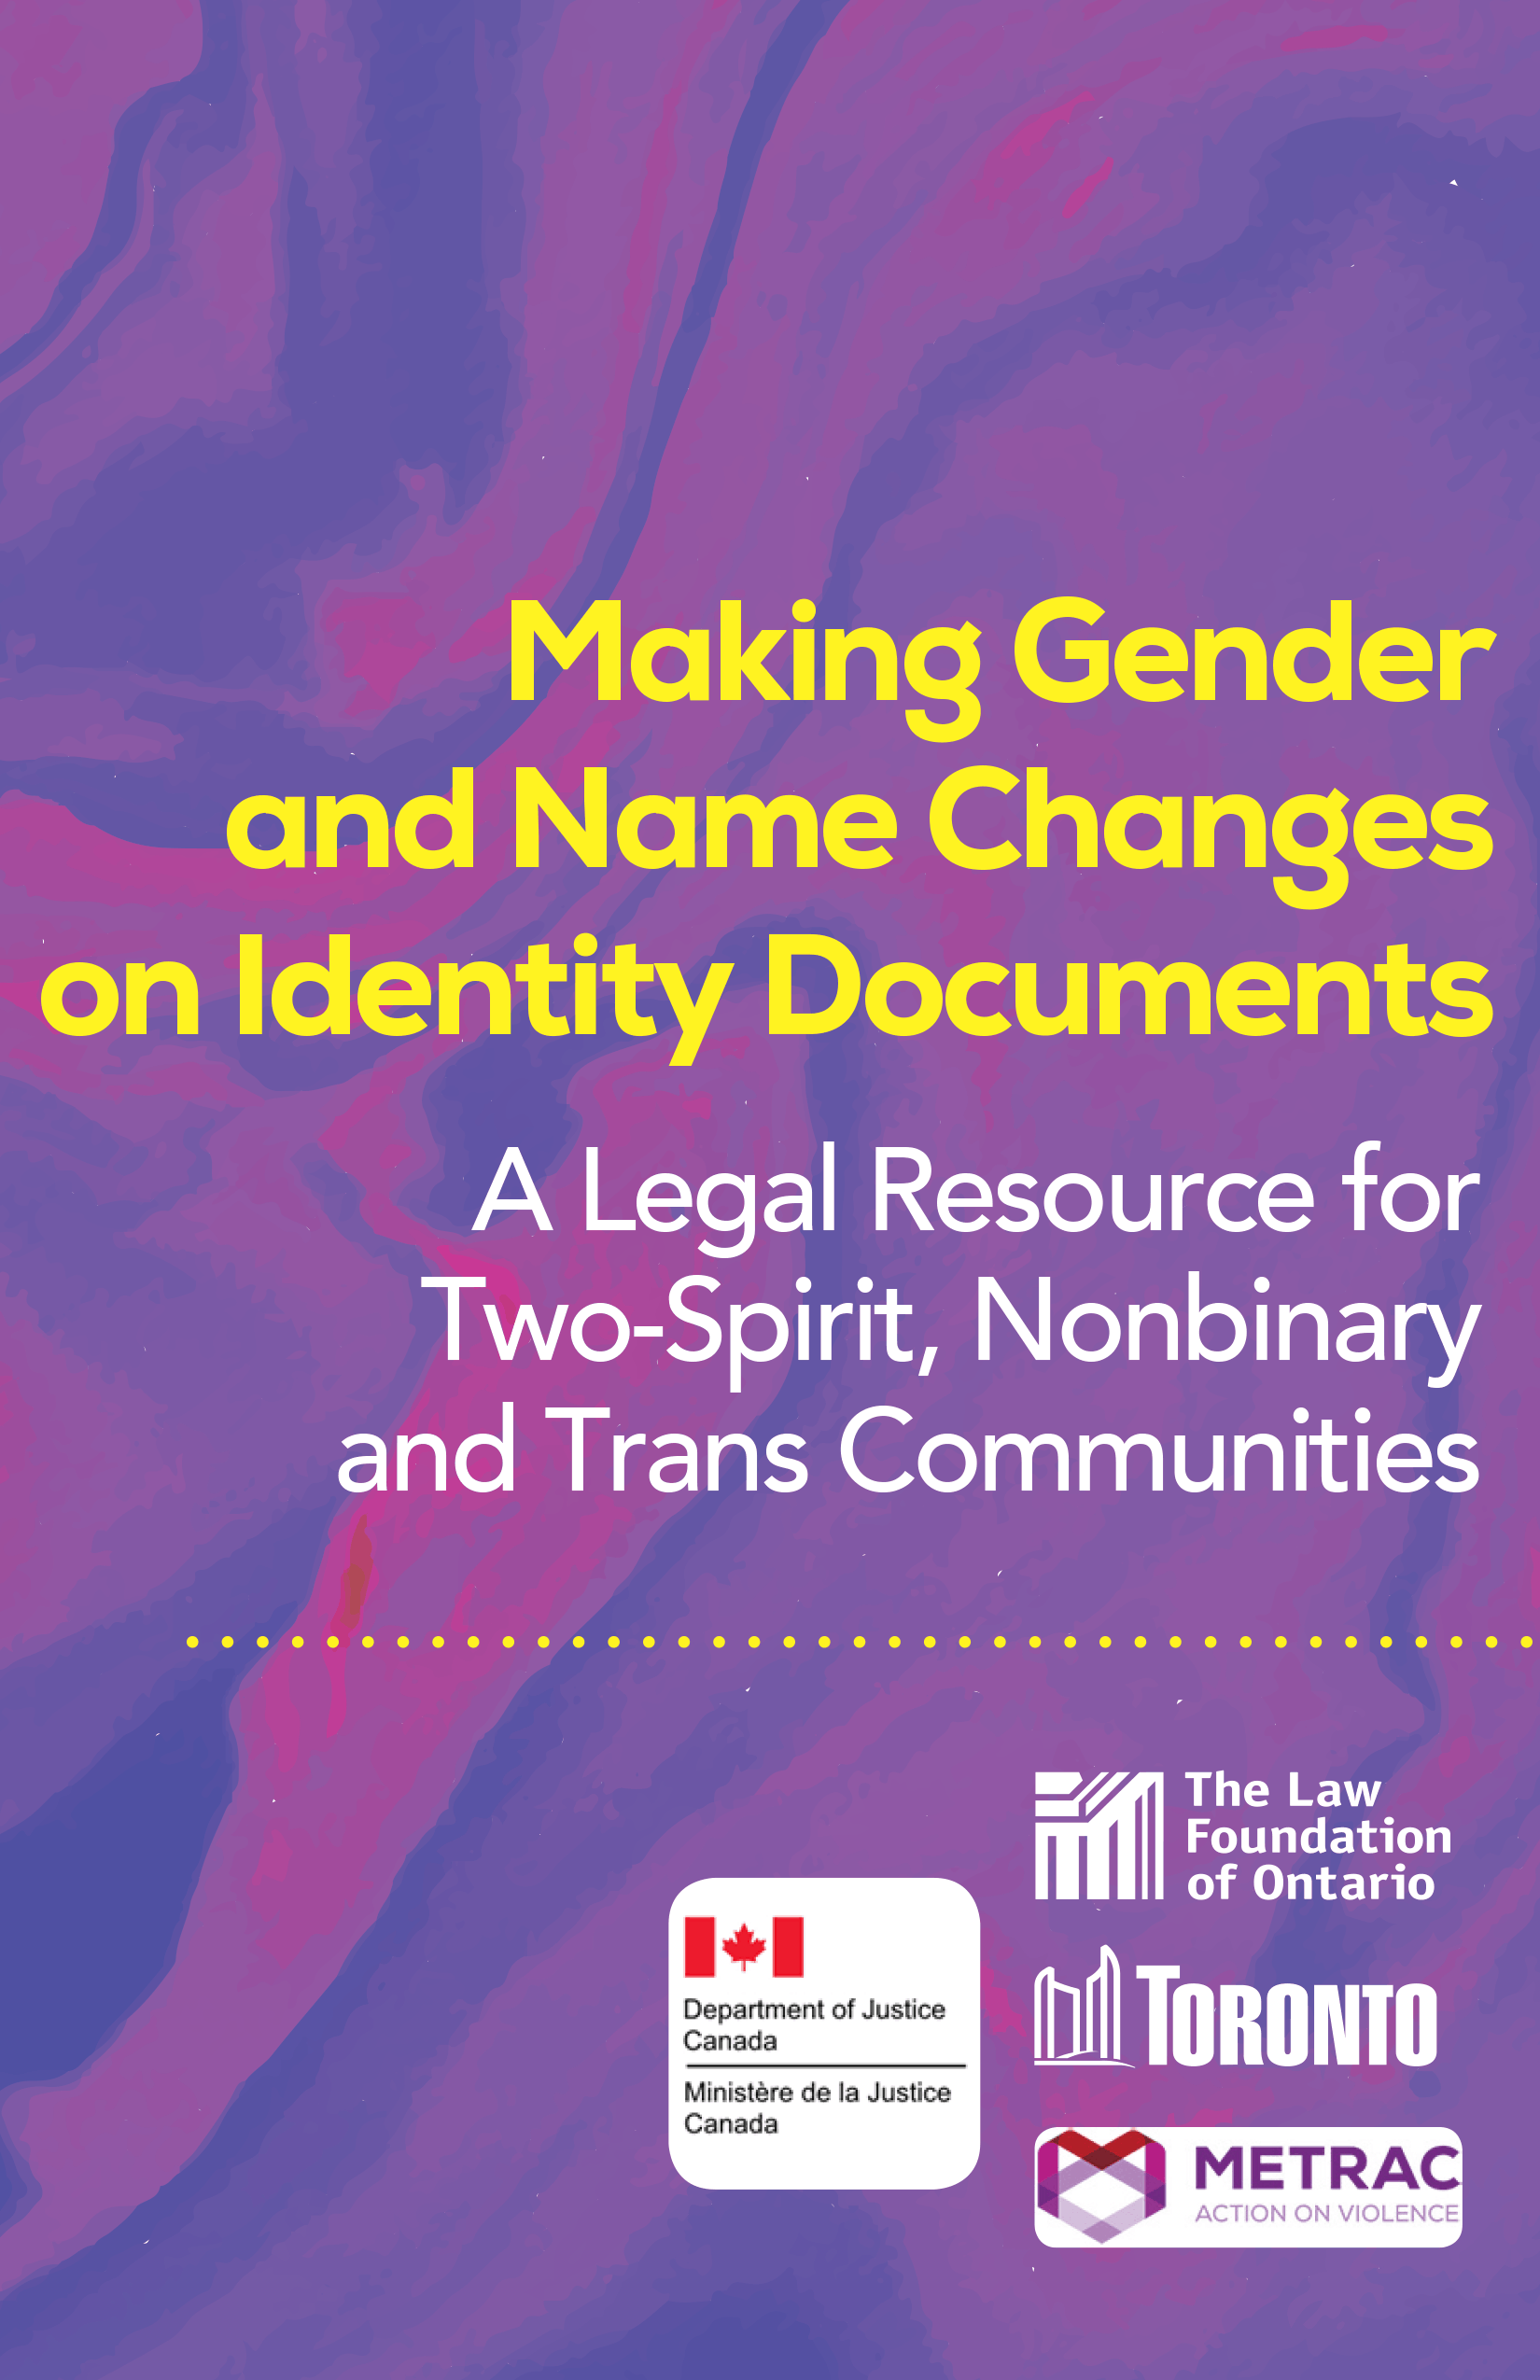 Making Gendder and Name Changes on Identity Documents: A Legal Resource for Two-Spirit, Nonbinary and Trans Communities